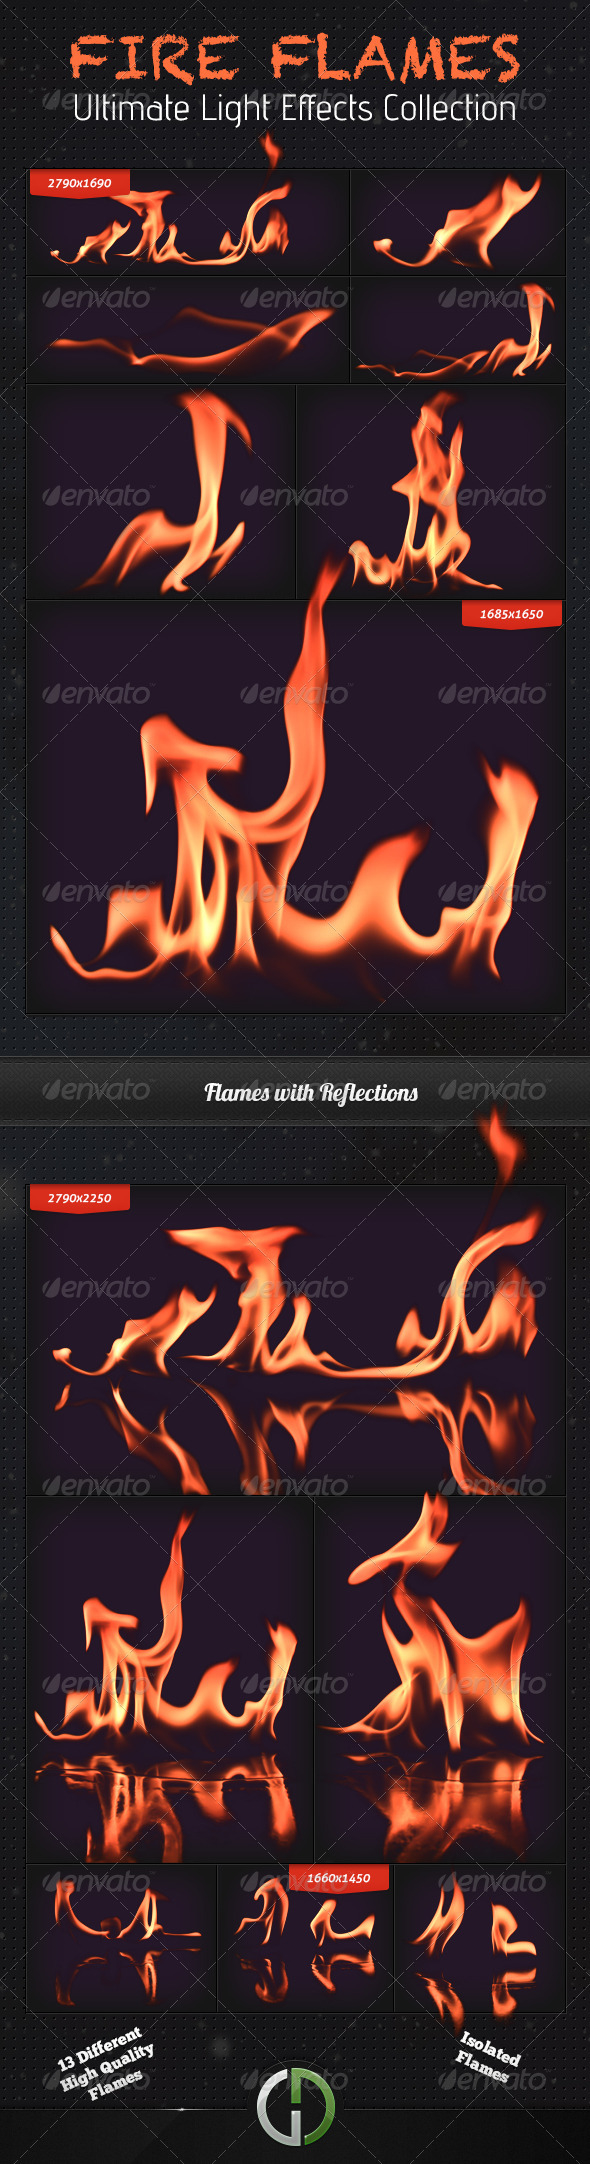 ultimate_light_effects_collection_flames